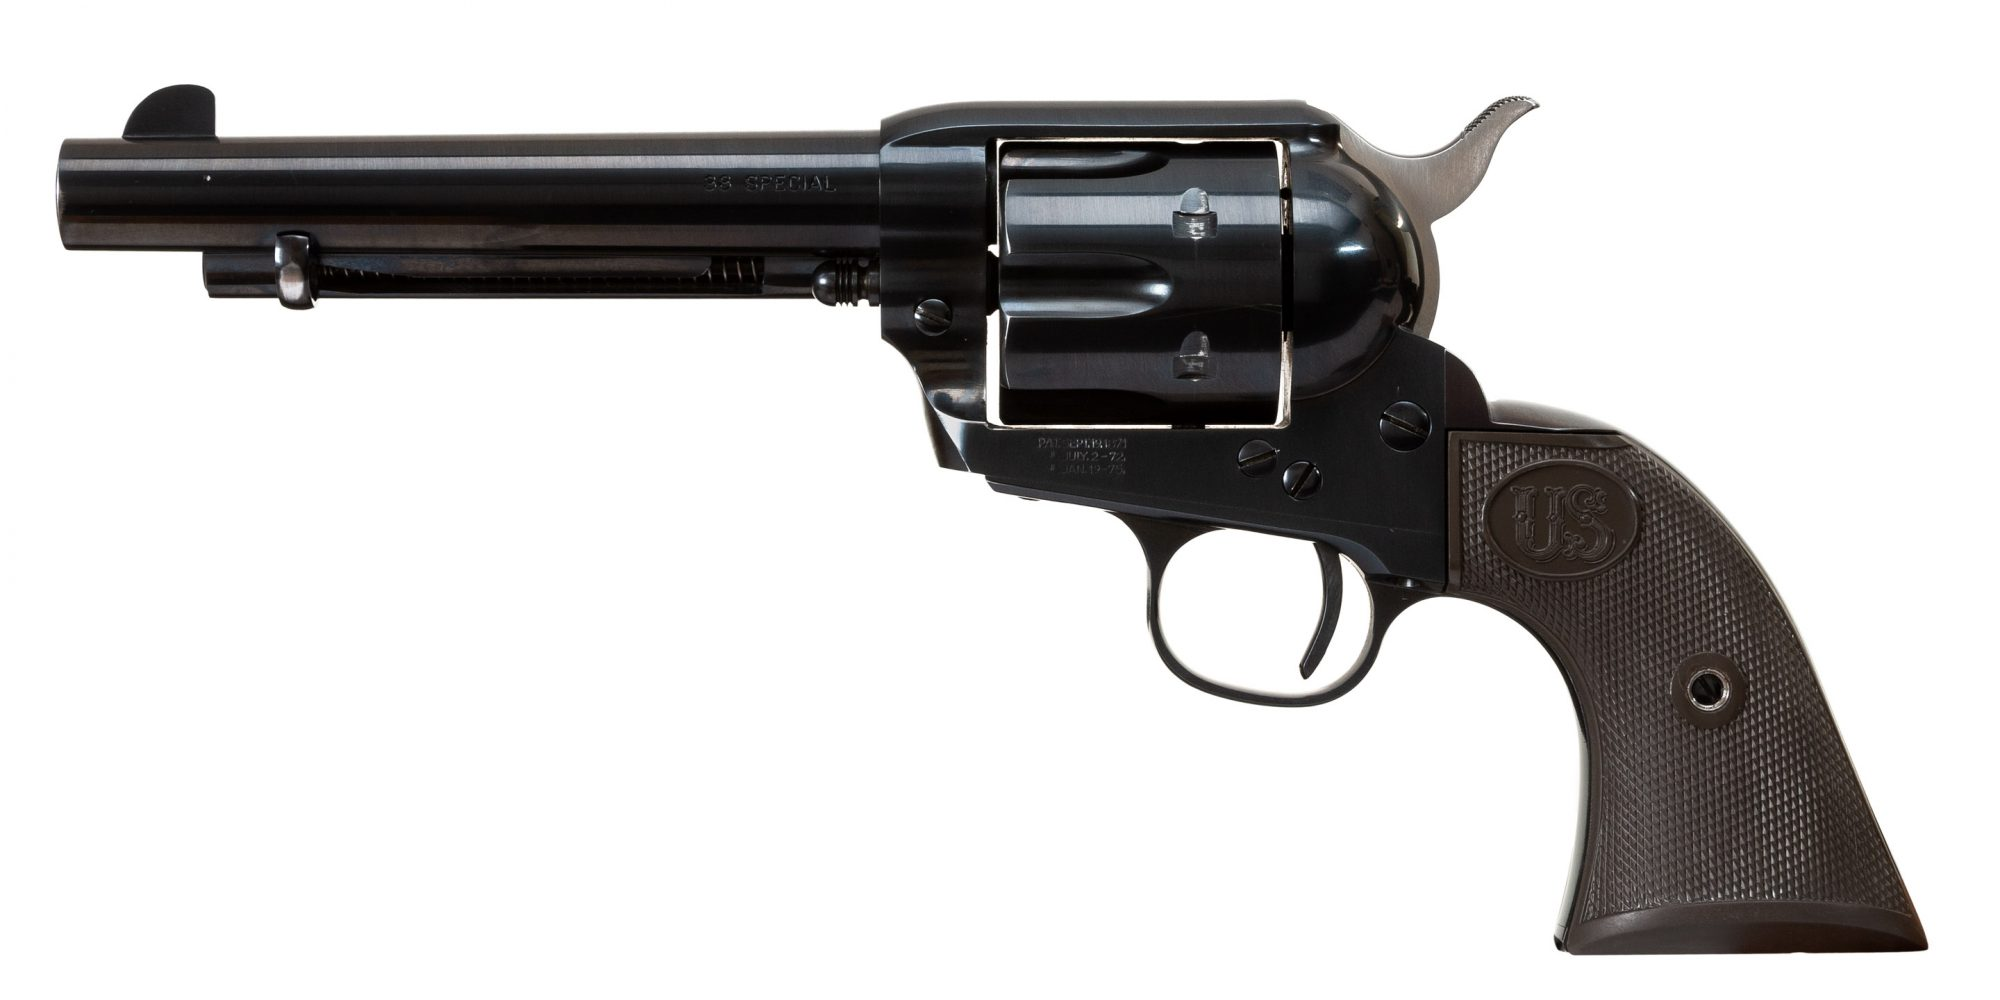 Photo of a U.S. Fire Arms (USFA) Single Action Army (SAA) Revolver featuring USFA Dome Blue finish by Turnbull Restoration of Bloomfield, NY